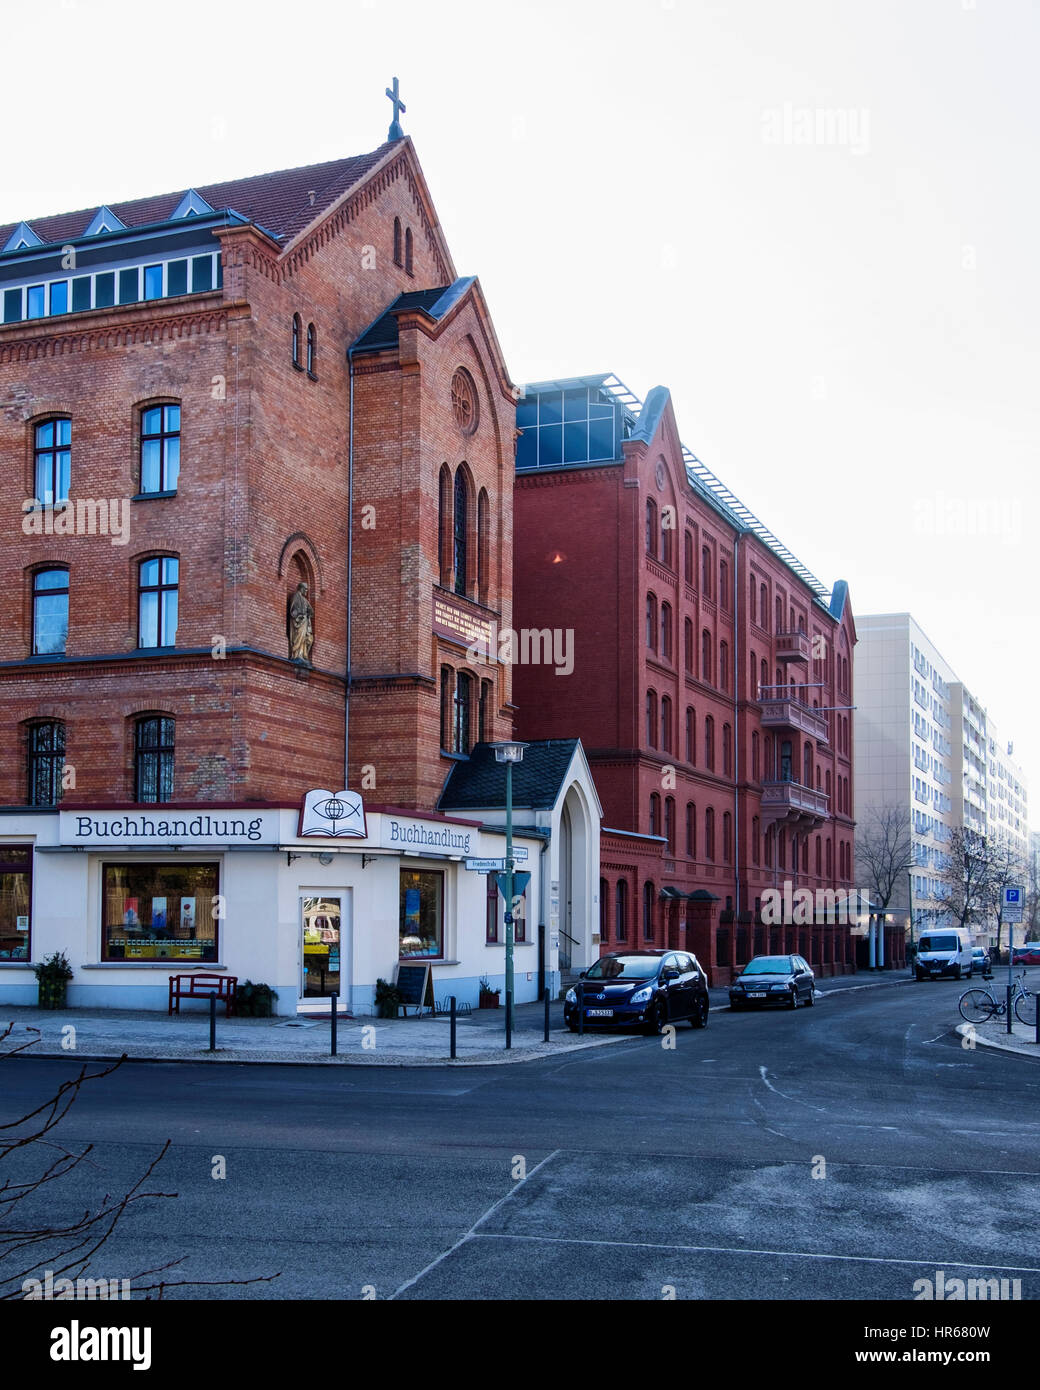 Berlin Friedrichshain. Religious book shop in old brick church building, Listed historic building exterior. - Stock Image